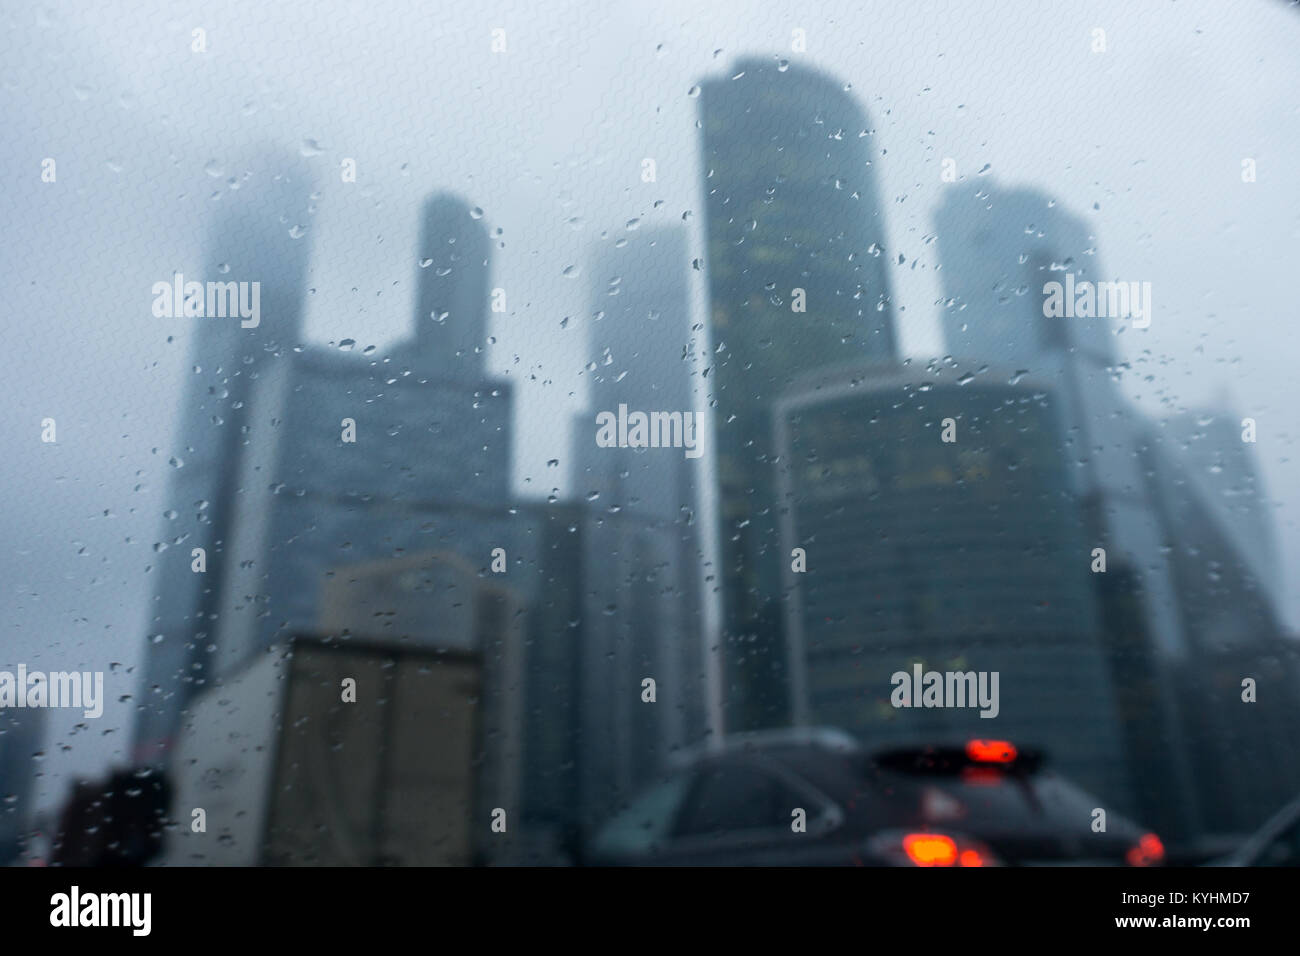 View of houses through windshield of car in rain - Stock Image